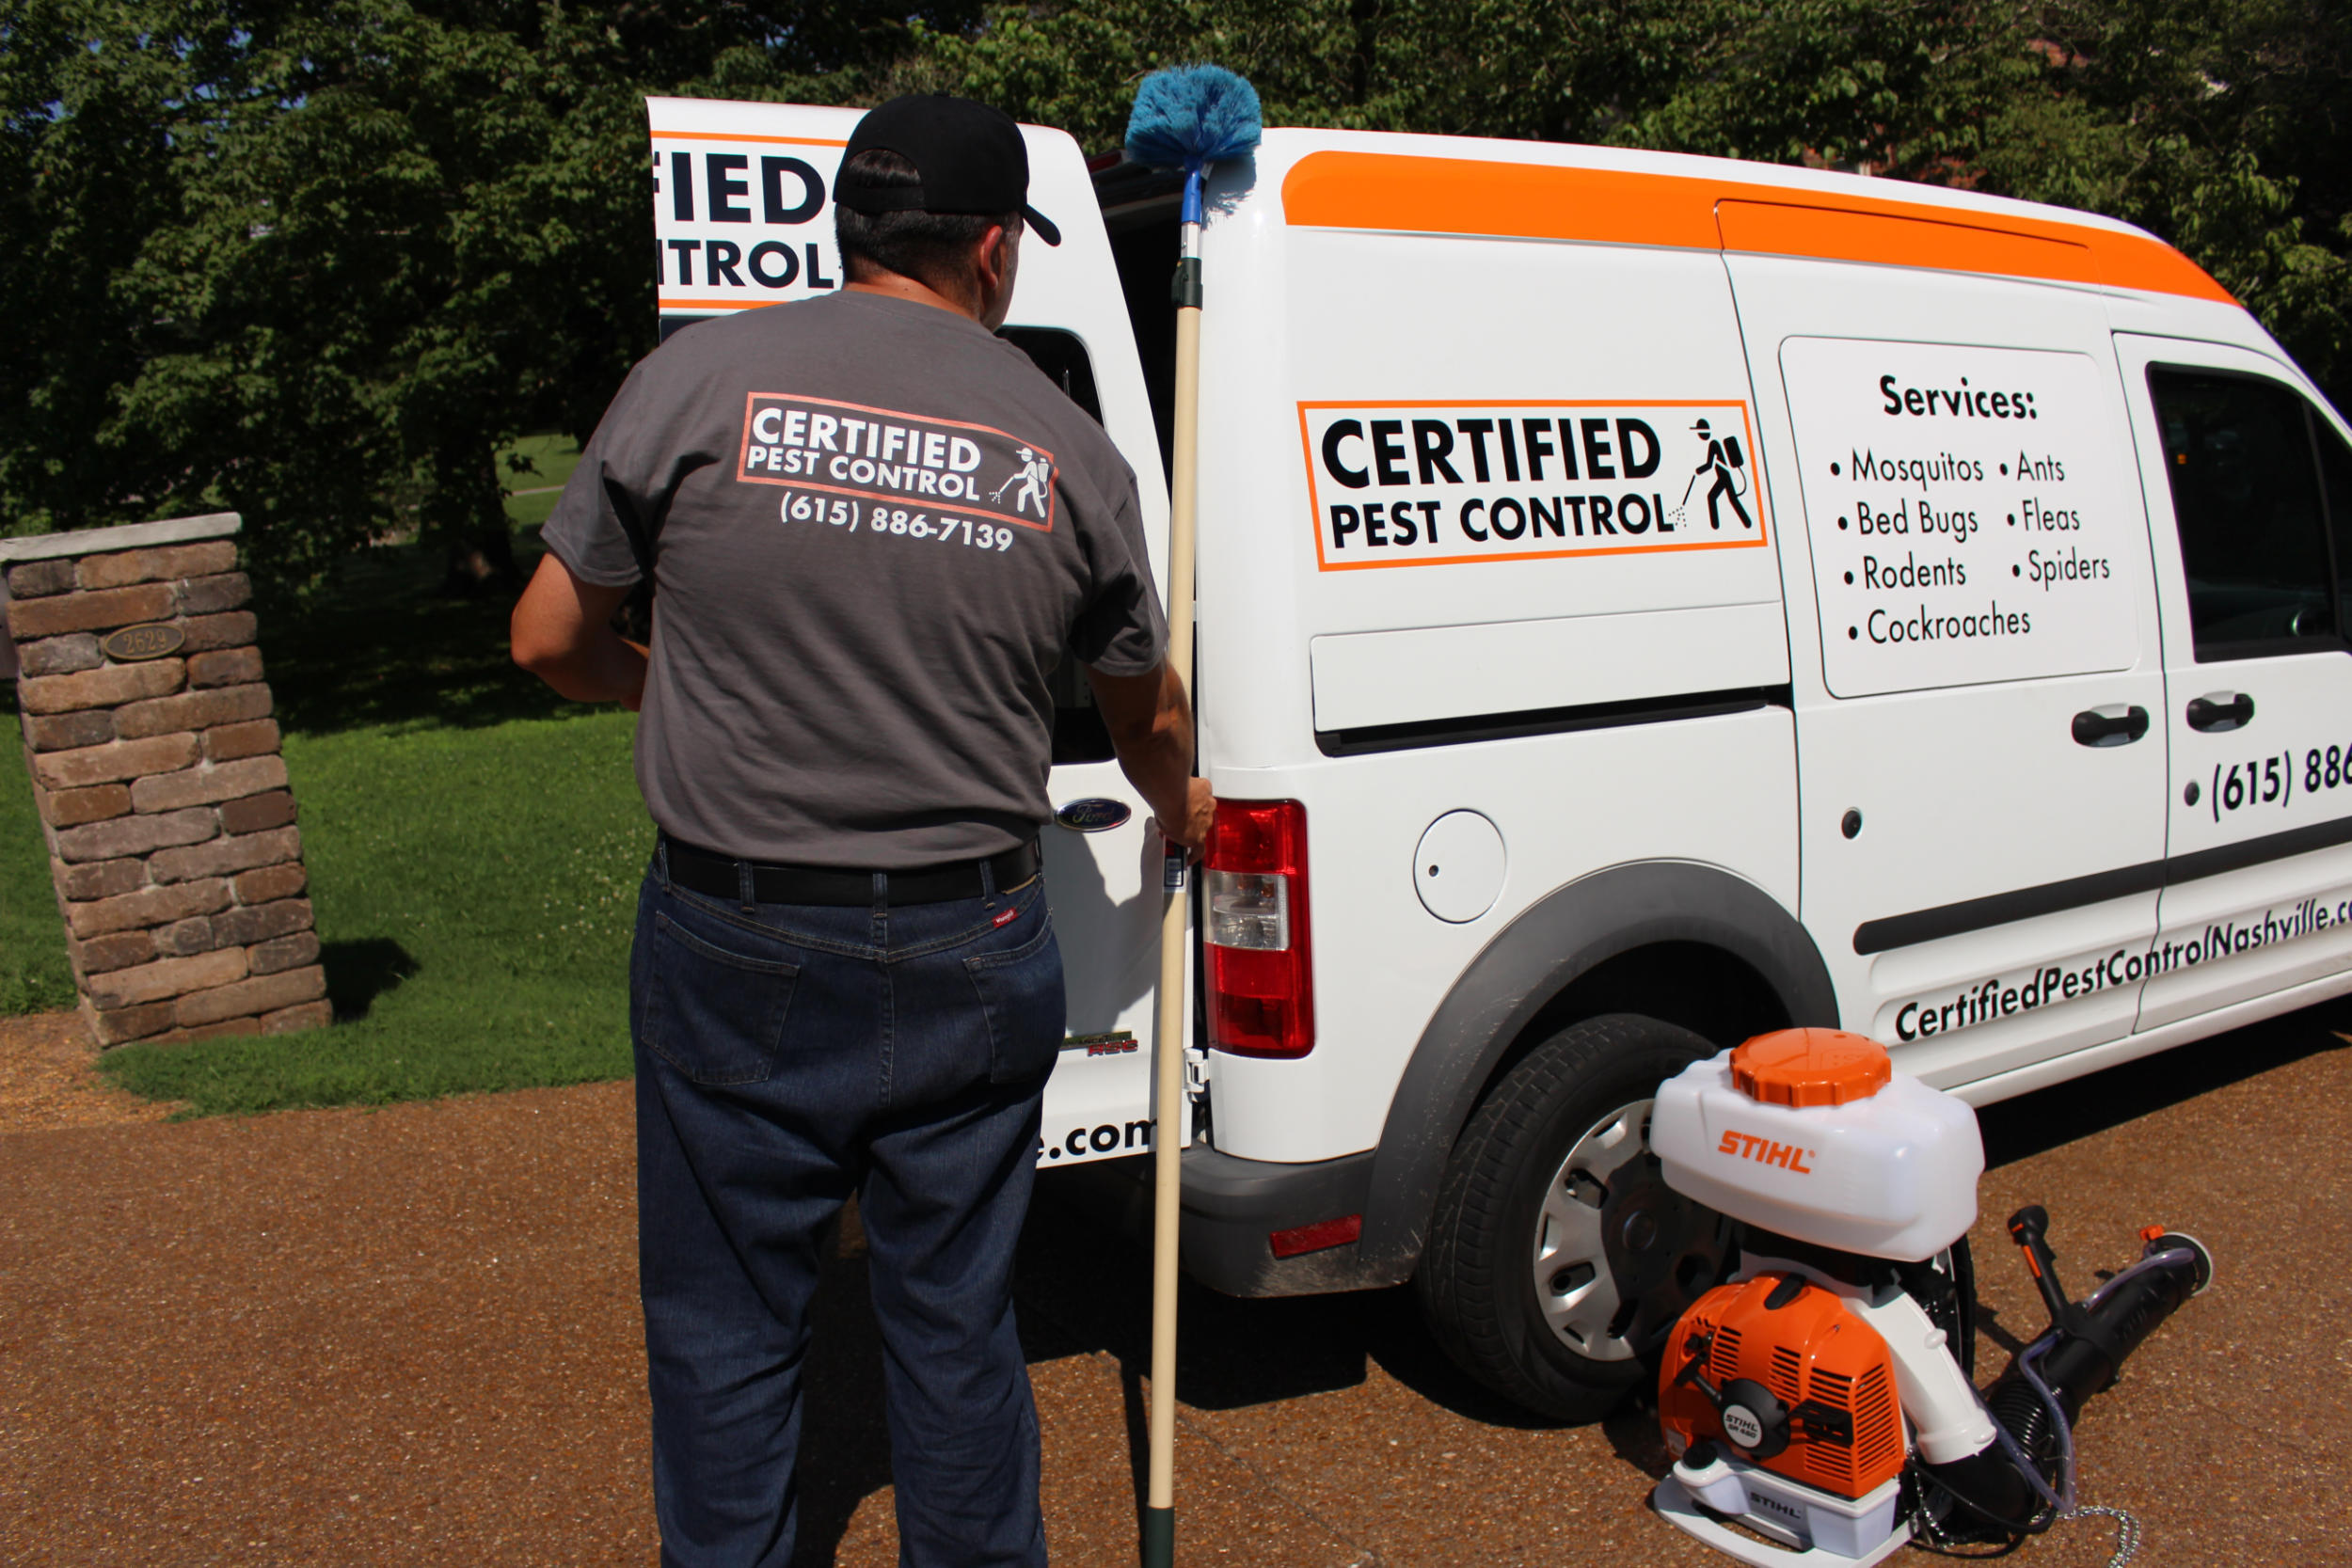 Certified Pest Control image 2